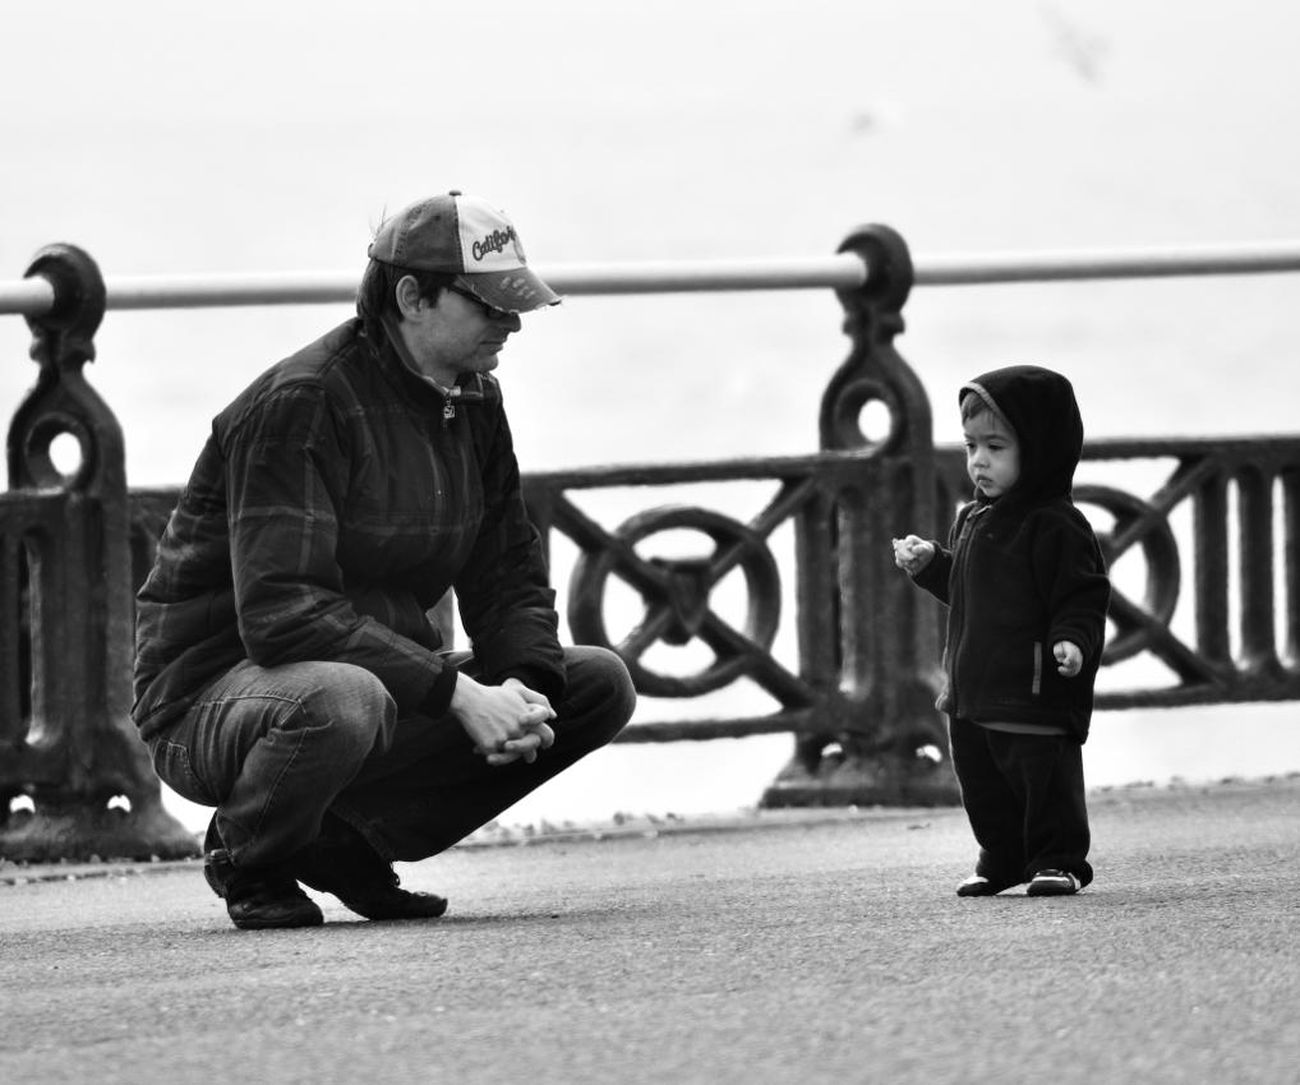 Streetphotography Father & Son Love Hanging Out Check This Out Enjoying Life The Street Photographer - 2016 EyeEm Awards